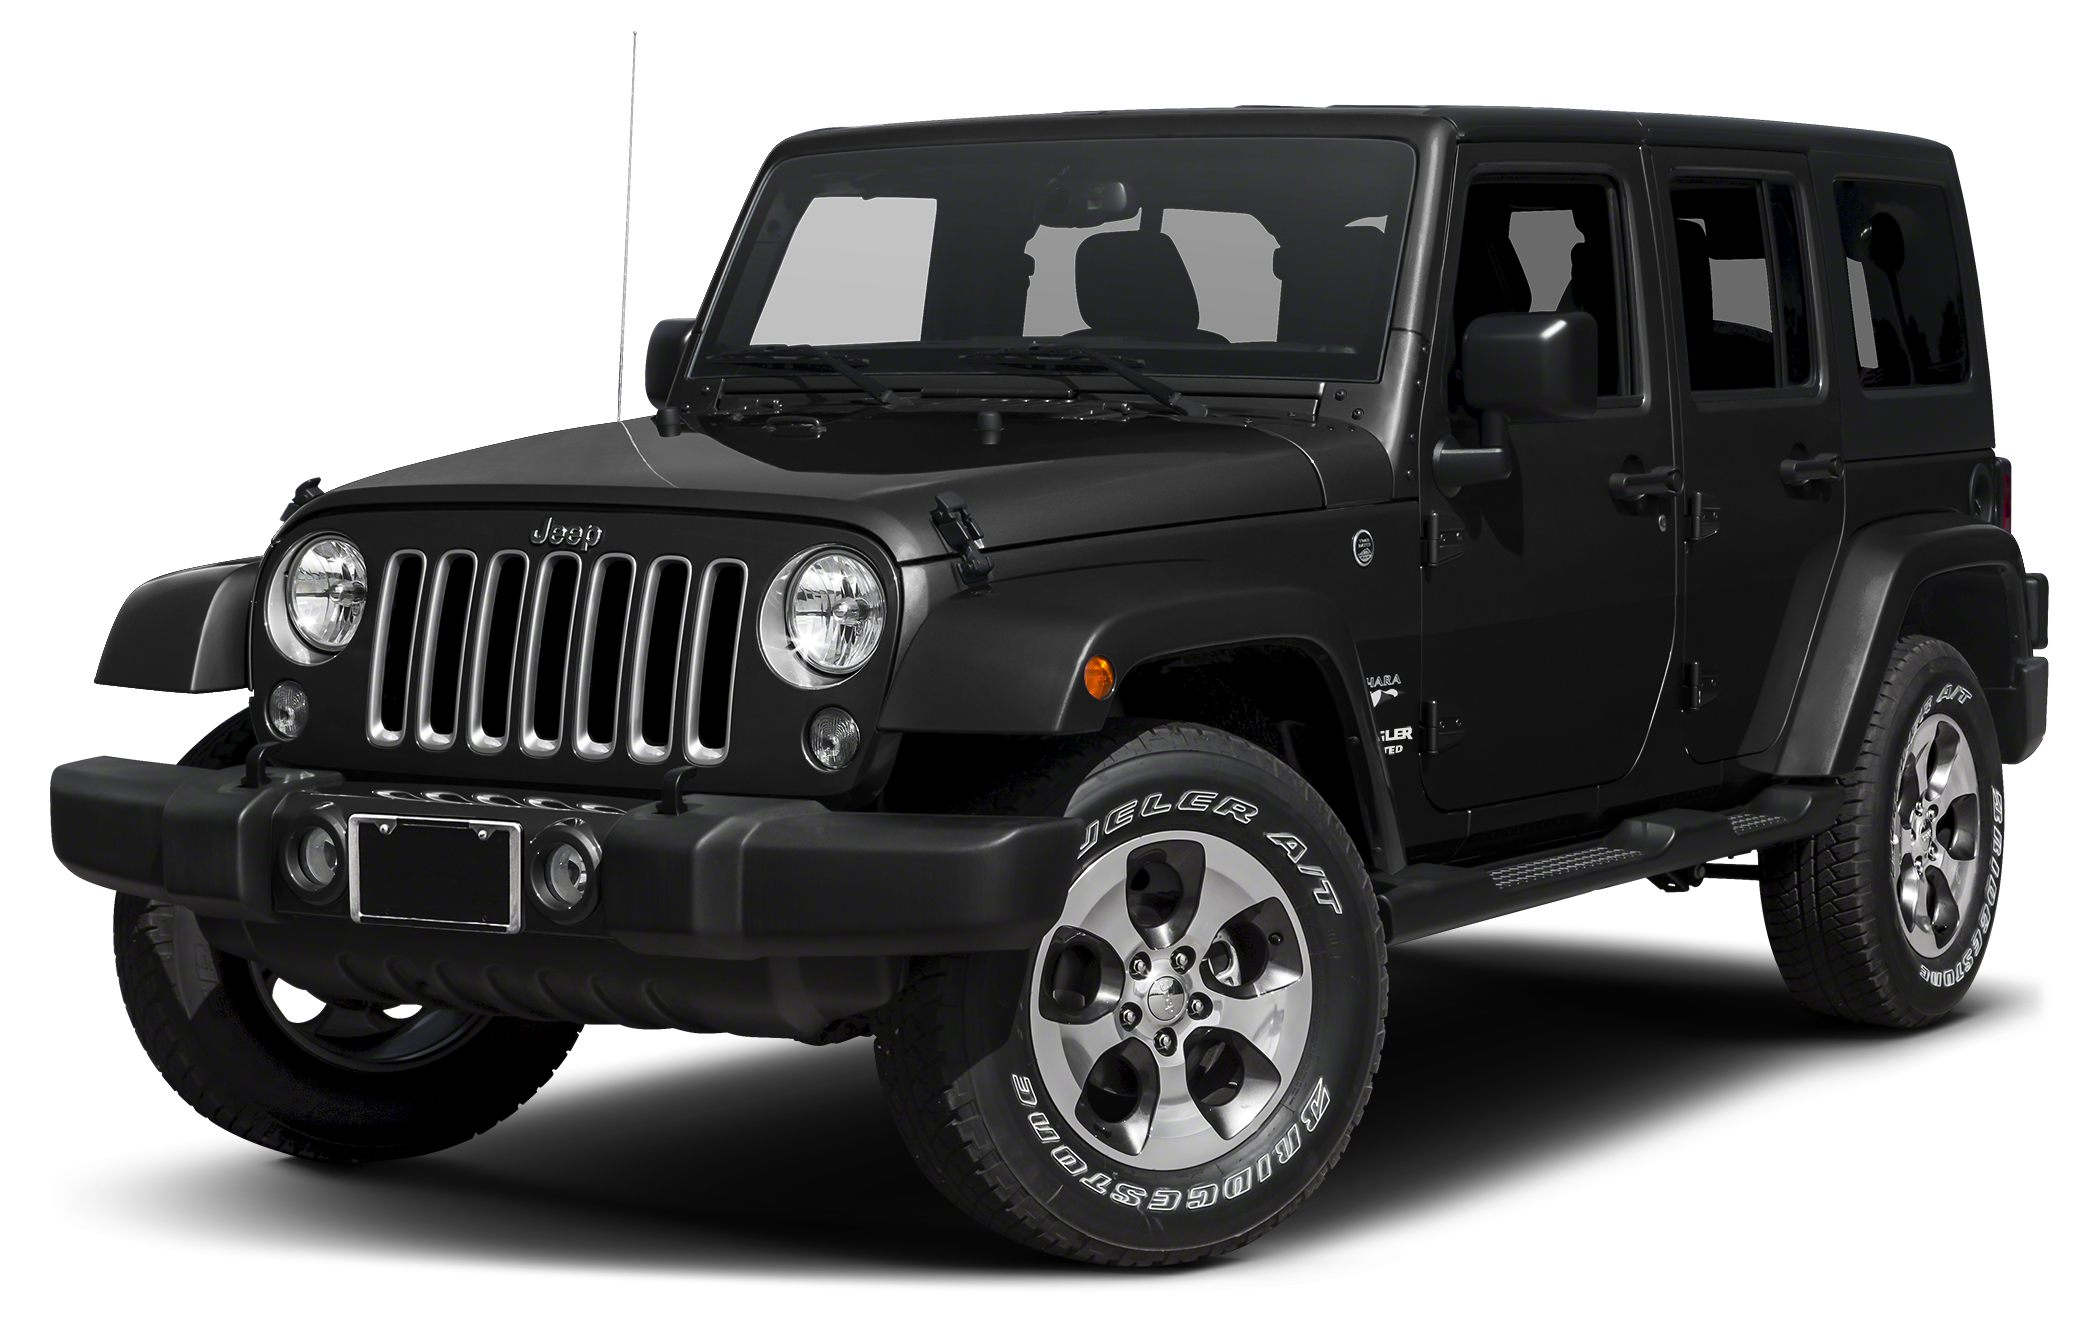 2014 Jeep Wrangler Unlimited Sahara CLEAN CARFAX REPORT2 PREVIOUS OWNERSONLY 20000 MILES